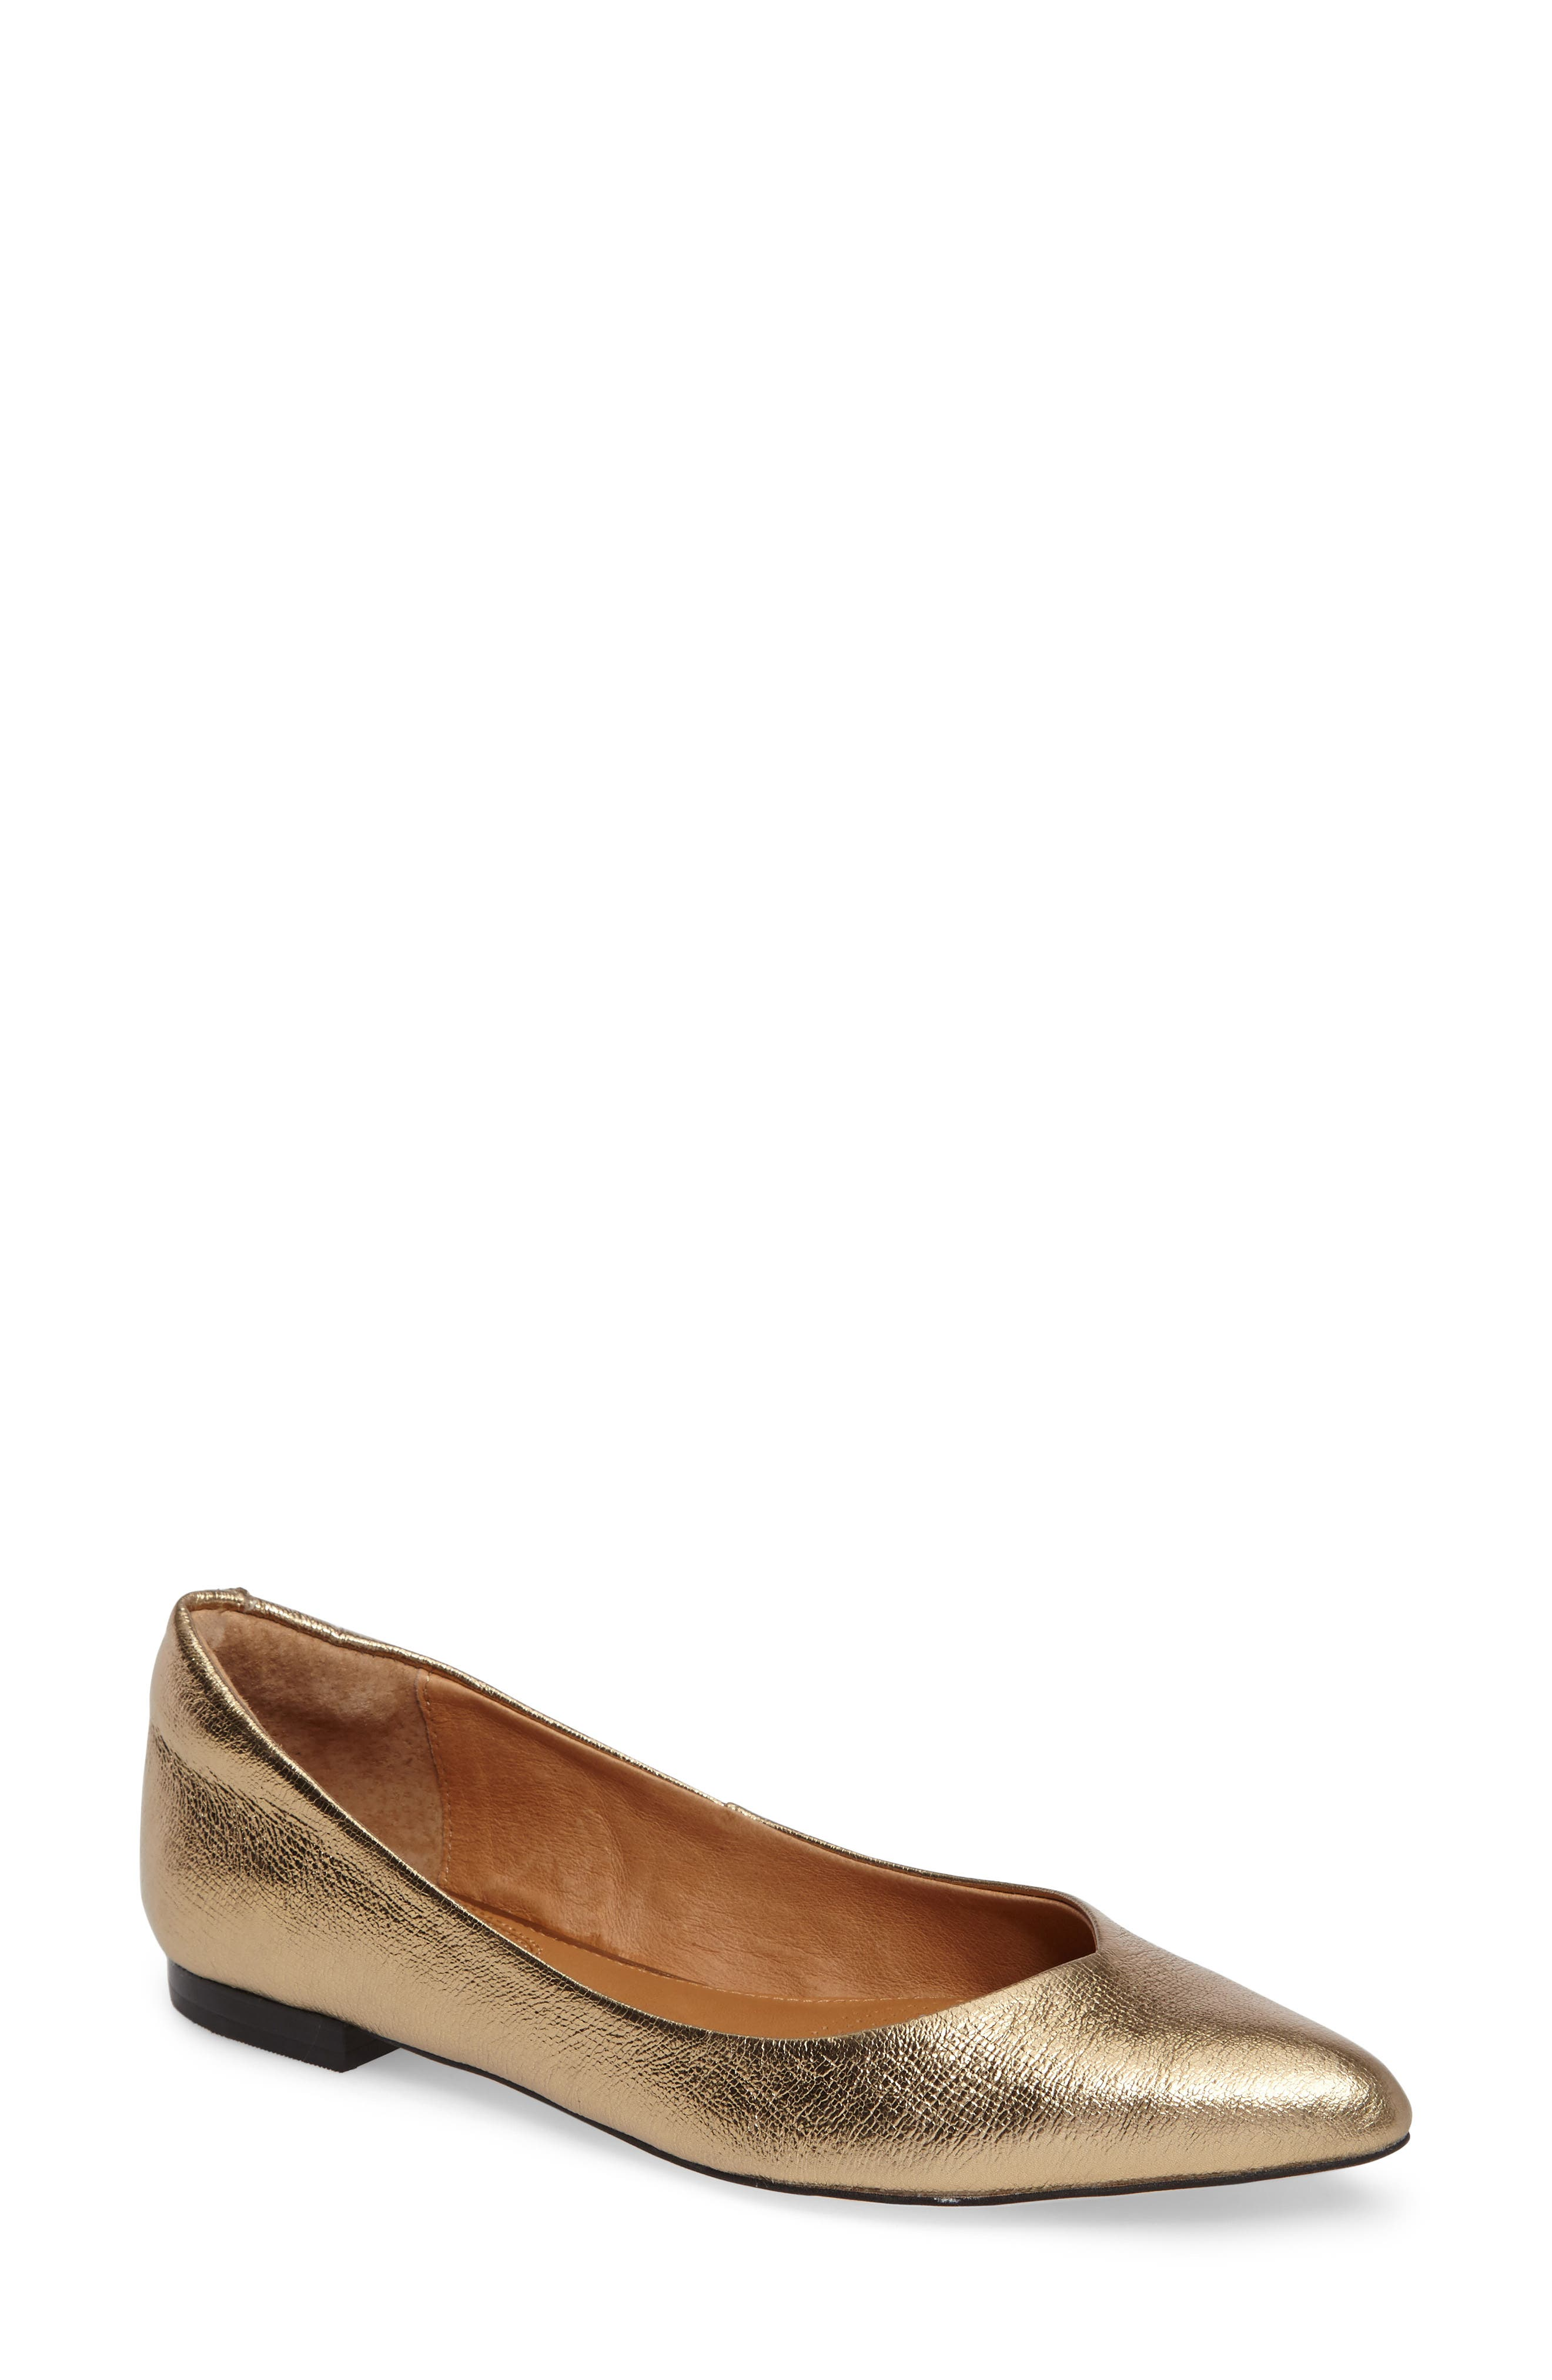 Alternate Image 1 Selected - Corso Como Julia Pointy Toe Flat (Women)